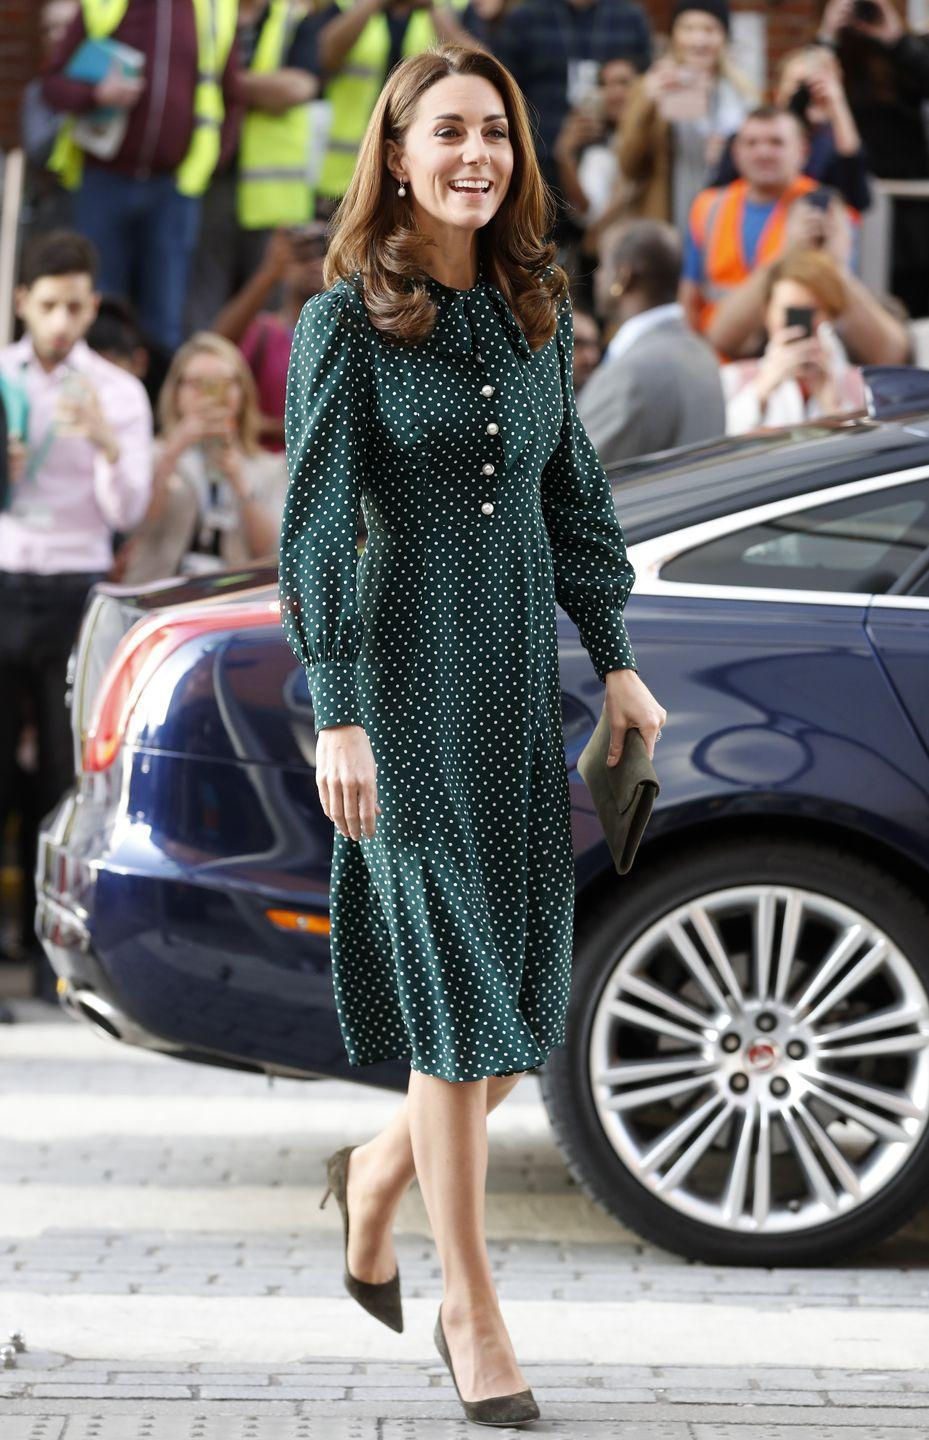 "<p>For a day of engagements, Kate stepped out in <a href=""https://go.redirectingat.com?id=74968X1596630&url=https%3A%2F%2Fus.lkbennett.com%2Fproduct%2FDRMORTIMERSILKPrintGreen%7EMortimer-Dotted-Silk-Dress-Green&sref=https%3A%2F%2Fwww.townandcountrymag.com%2Fstyle%2Ffashion-trends%2Fnews%2Fg1633%2Fkate-middleton-fashion%2F"" rel=""nofollow noopener"" target=""_blank"" data-ylk=""slk:a festive green polka dot dress"" class=""link rapid-noclick-resp"">a festive green polka dot dress</a> and paired the look with an olive clutch and matching heels.</p><p><a class=""link rapid-noclick-resp"" href=""https://go.redirectingat.com?id=74968X1596630&url=https%3A%2F%2Fus.lkbennett.com%2Fproduct%2FDRMORTIMERSILKPrintGreen%7EMortimer-Dotted-Silk-Dress-Green&sref=https%3A%2F%2Fwww.townandcountrymag.com%2Fstyle%2Ffashion-trends%2Fnews%2Fg1633%2Fkate-middleton-fashion%2F"" rel=""nofollow noopener"" target=""_blank"" data-ylk=""slk:Shop the Dress"">Shop the Dress</a></p>"